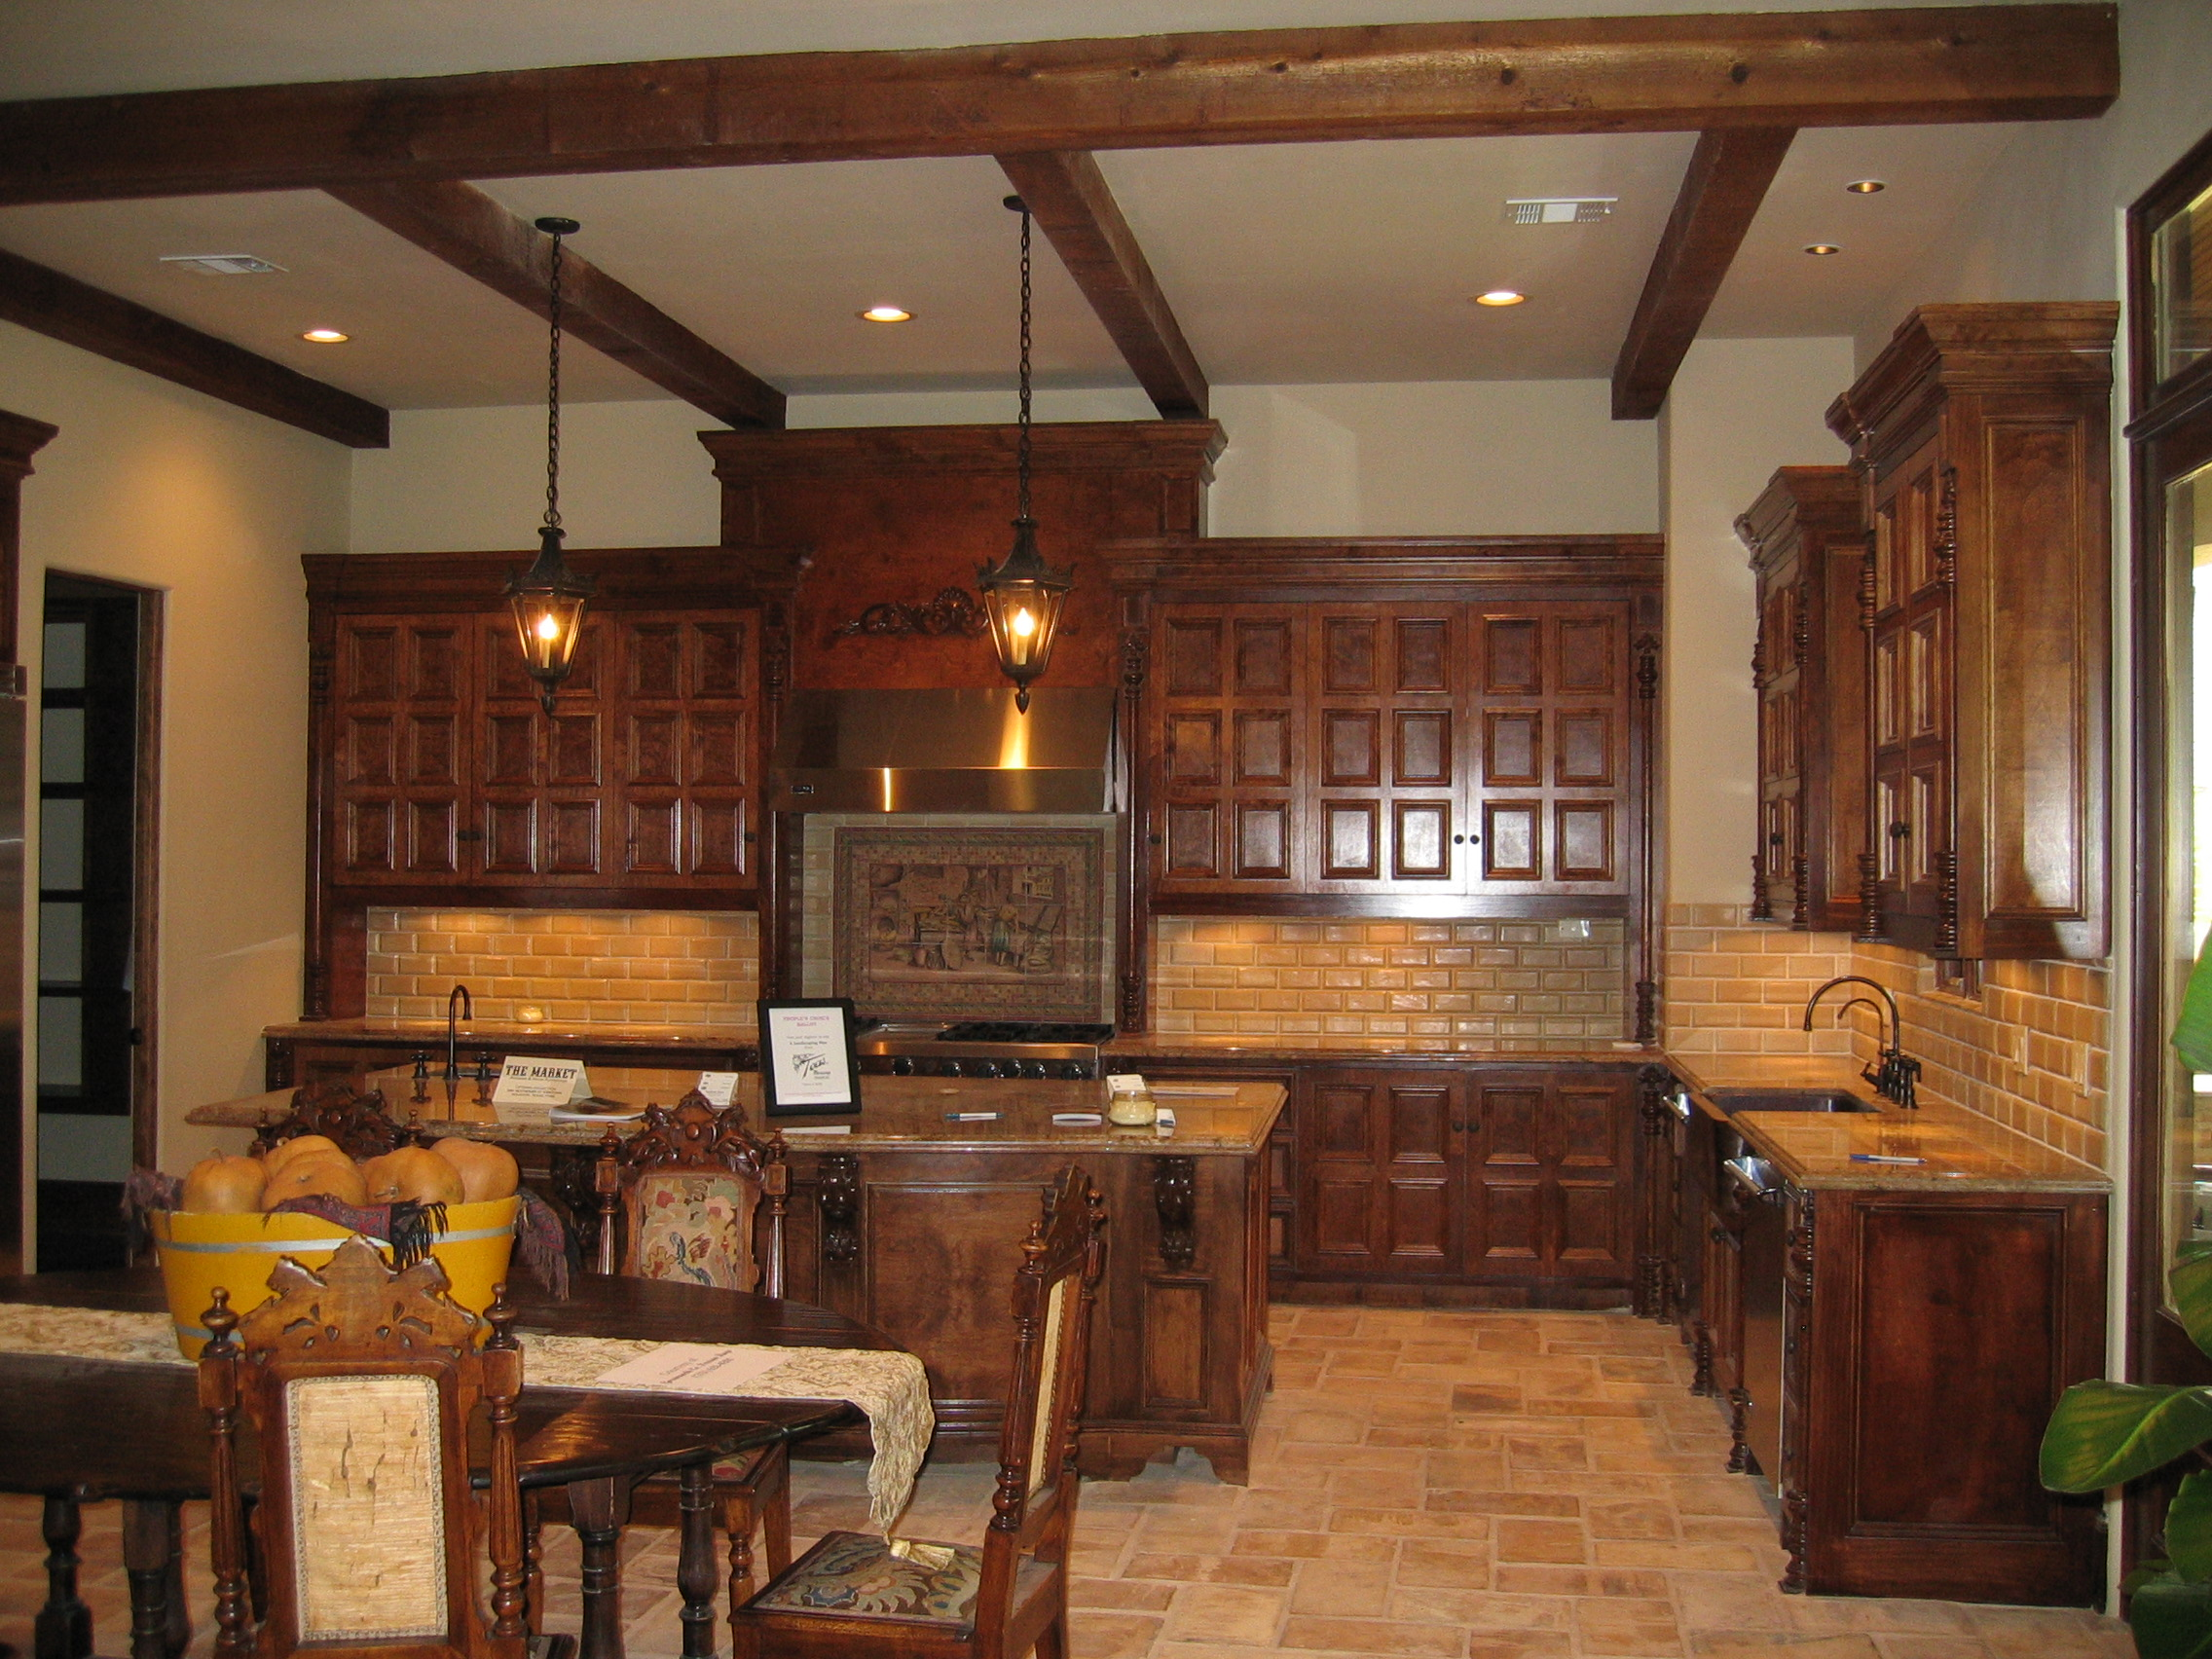 Award Winning Bellaire Showcase Home 2005 Custom Kitchen Cabinetry Floors Are Reclaimed Pavers From French Villa Built By Watermark Builders